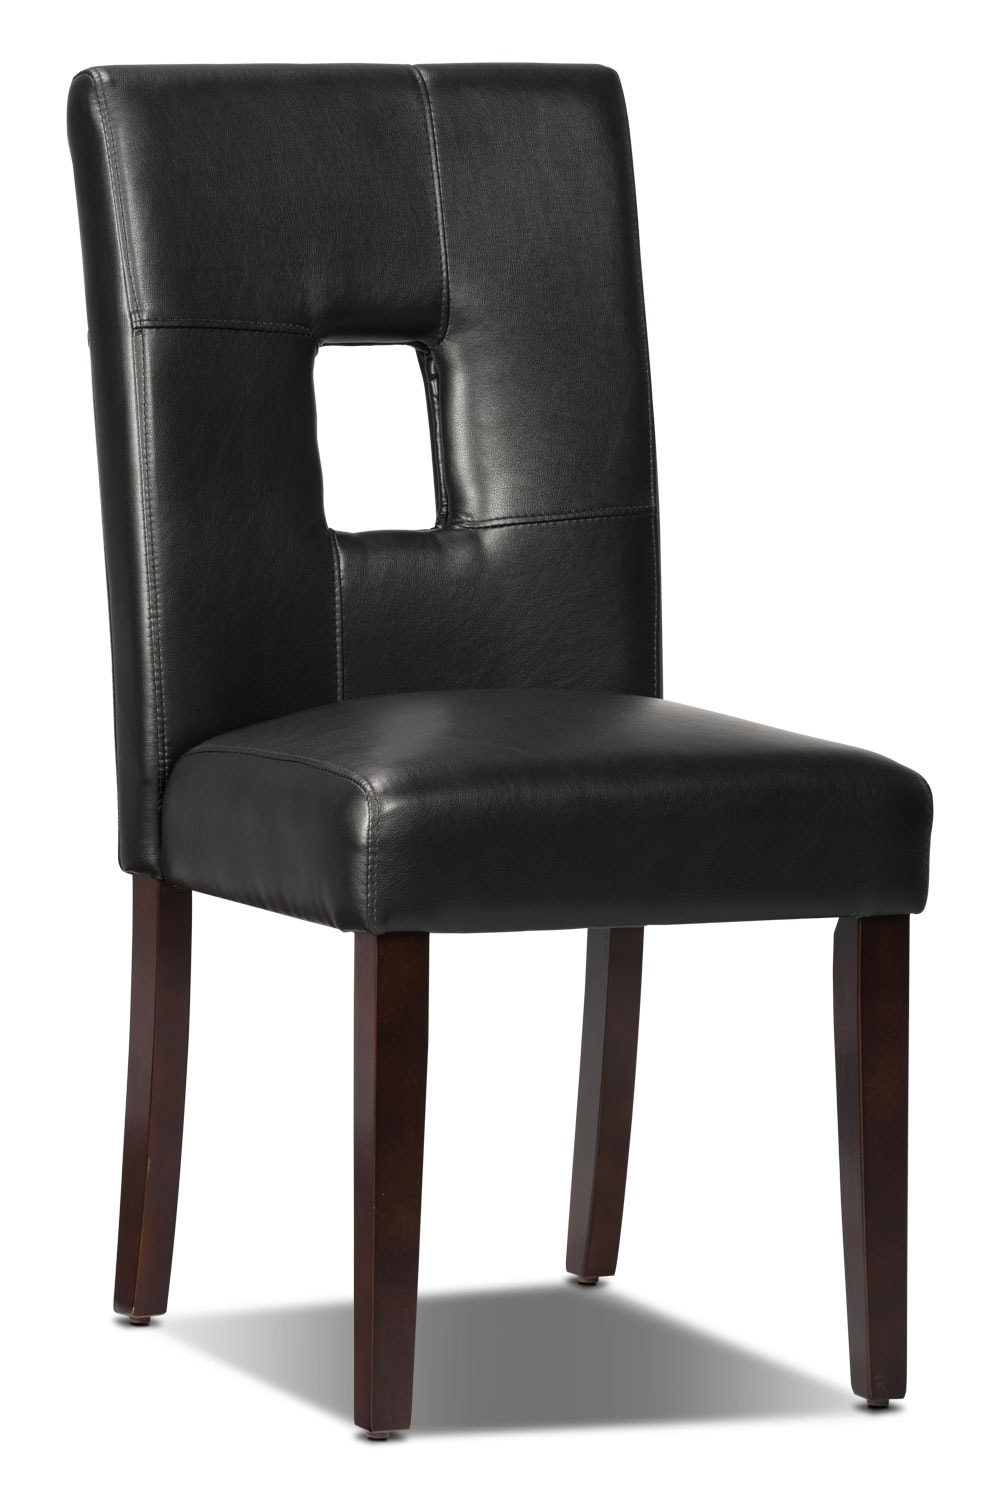 Mckena faux leather dining chair black the brick for Black leather dining room chairs